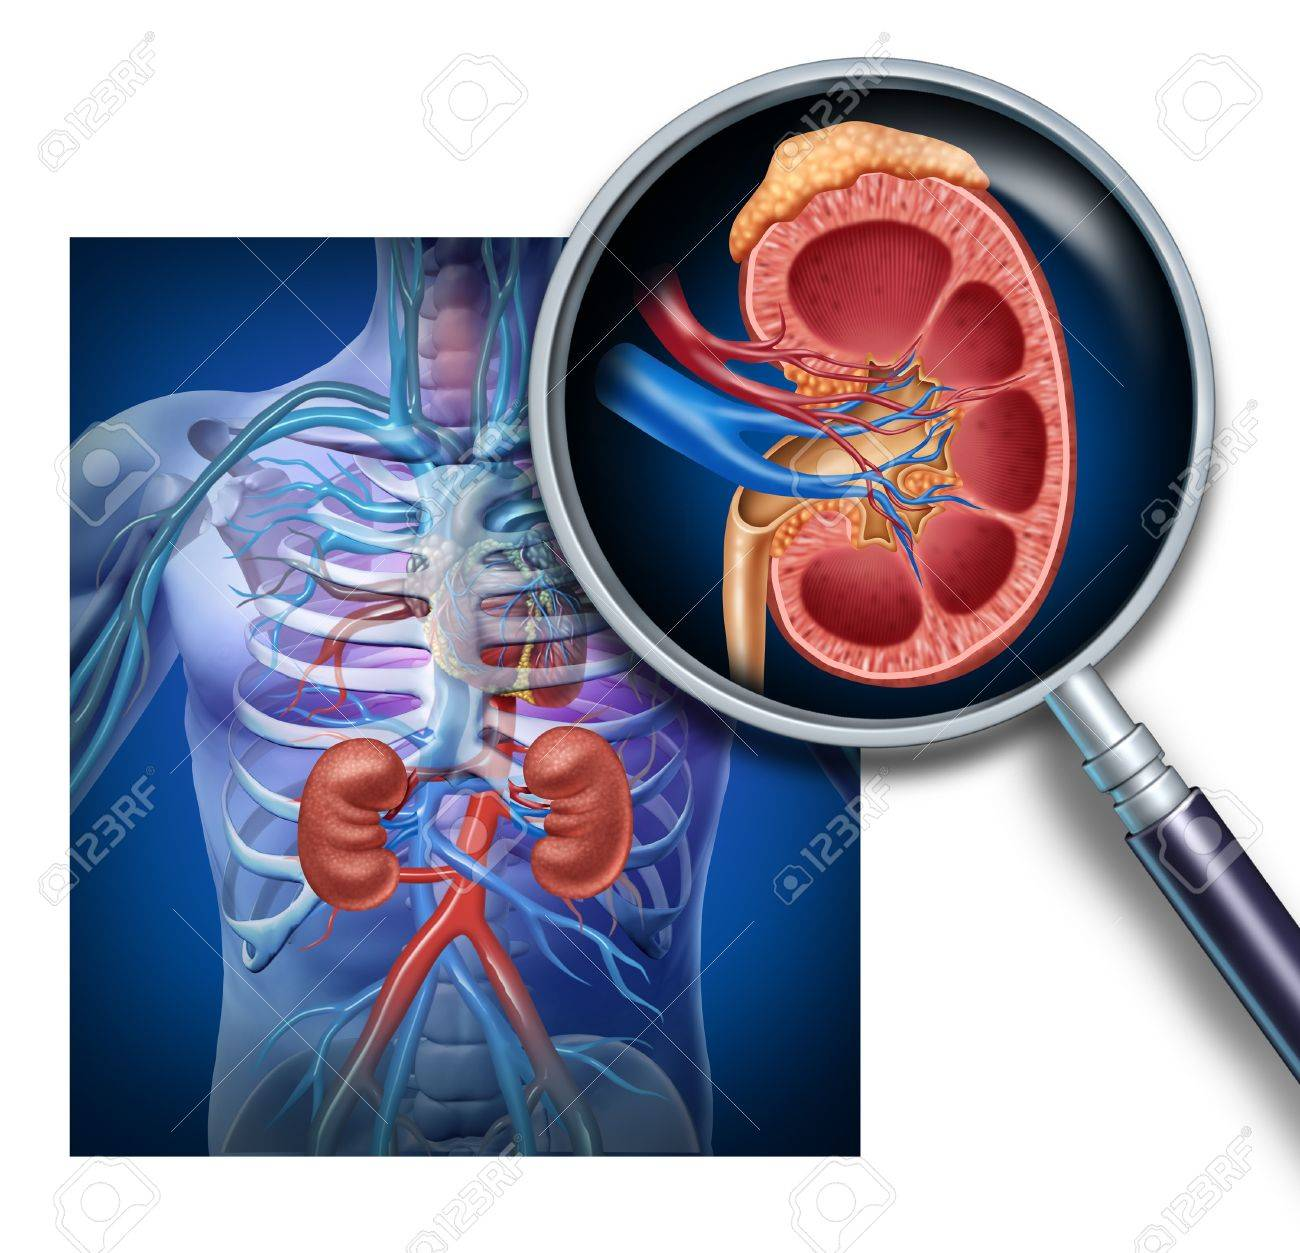 Human kidney magnification from a body as a medical diagram with human kidney magnification from a body as a medical diagram with a cross section of the ccuart Gallery